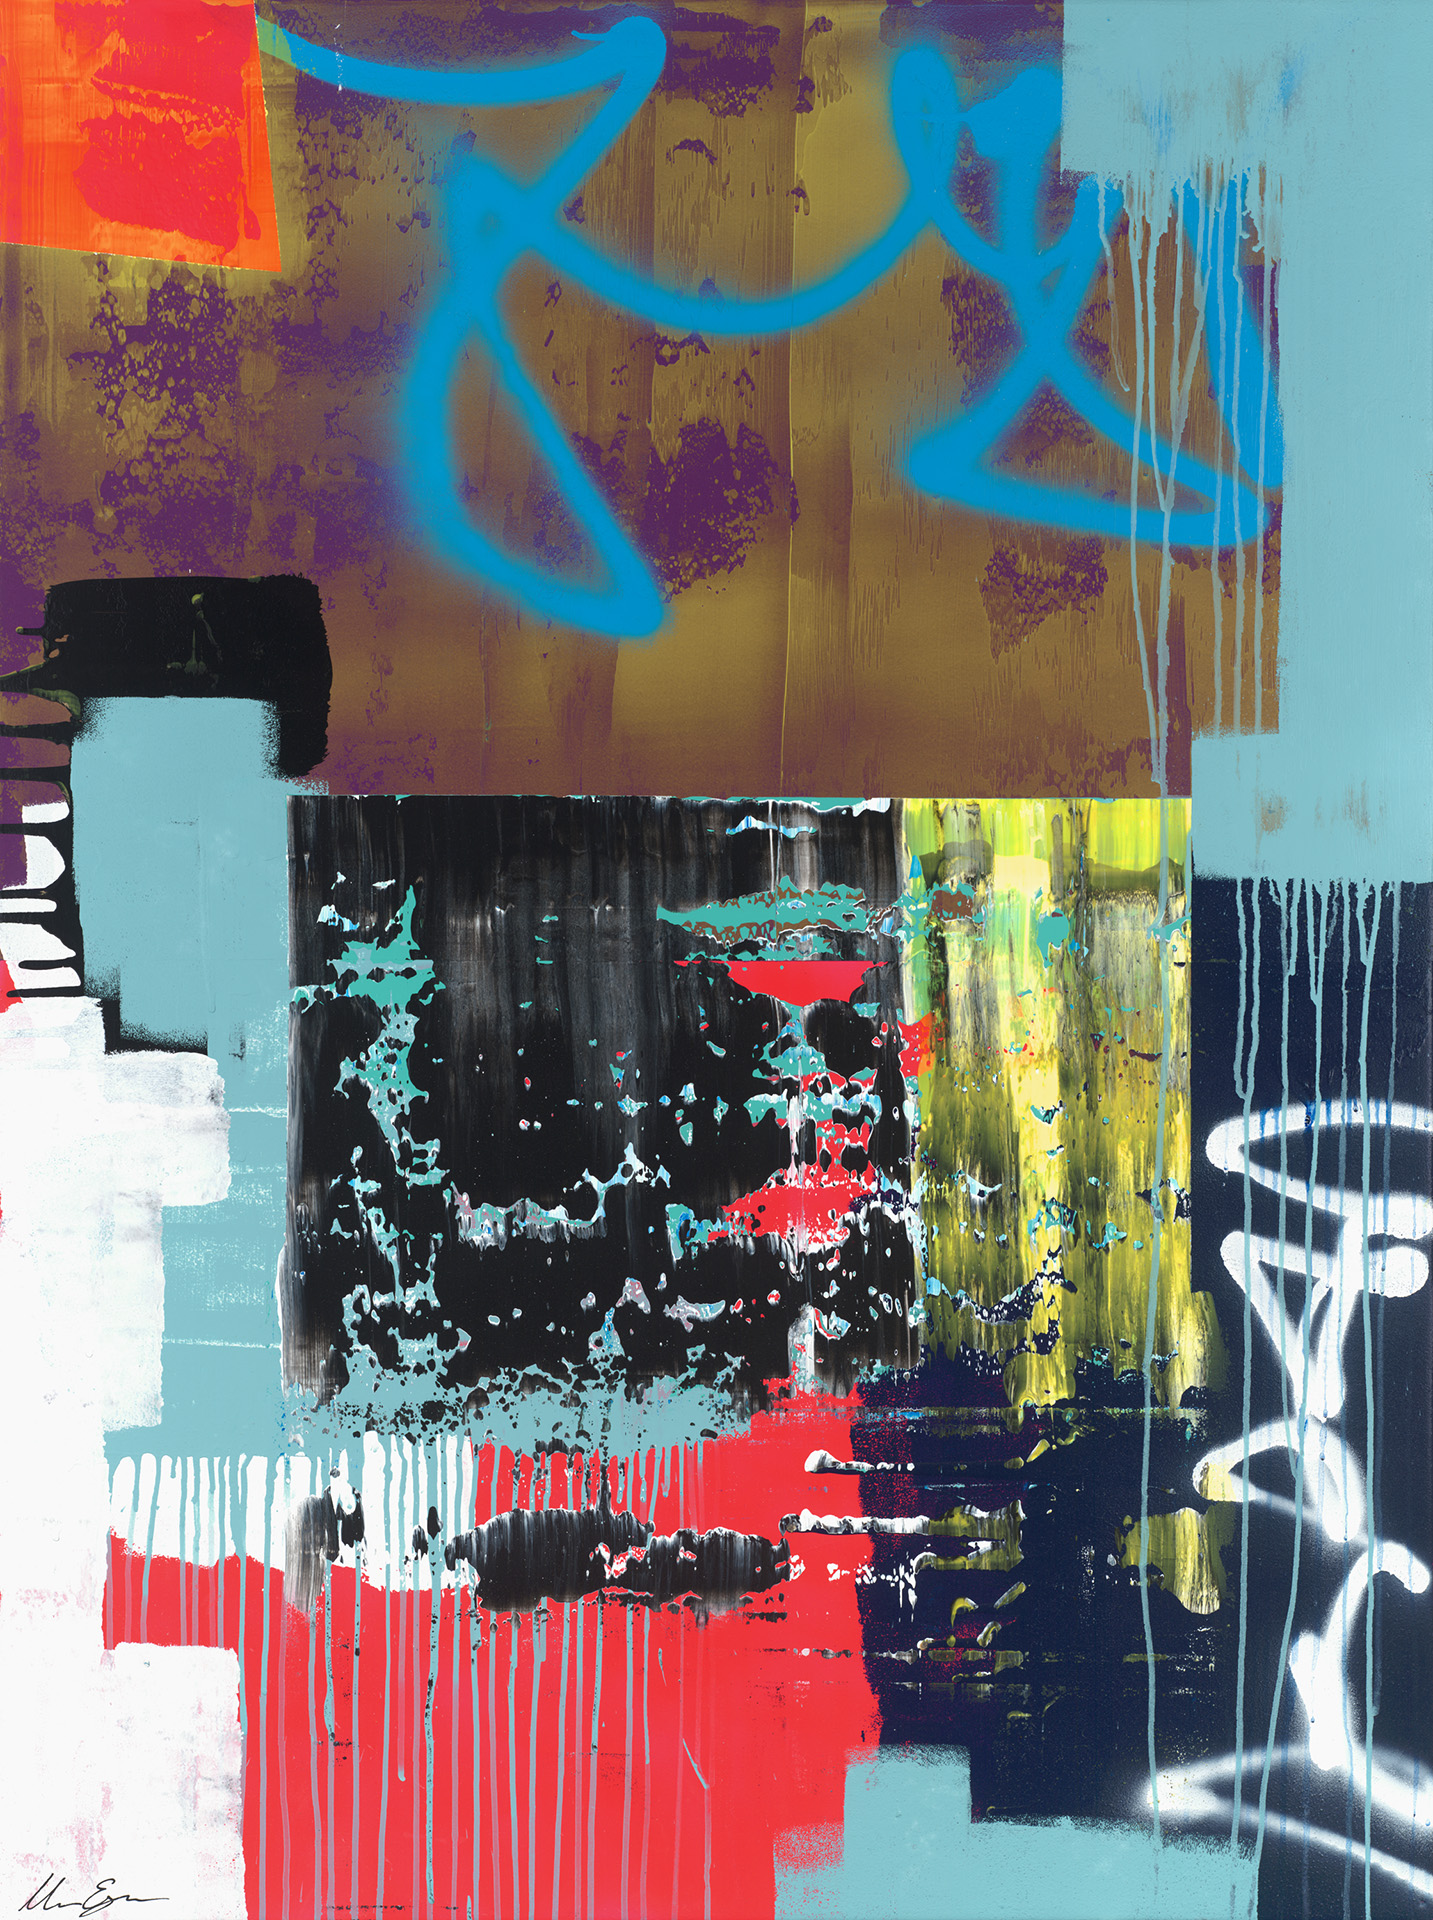 Bold and energetic abstract artwork from Dallas based contemporary artist Matt Esparza. Inspired by urban and rural textures and street art.